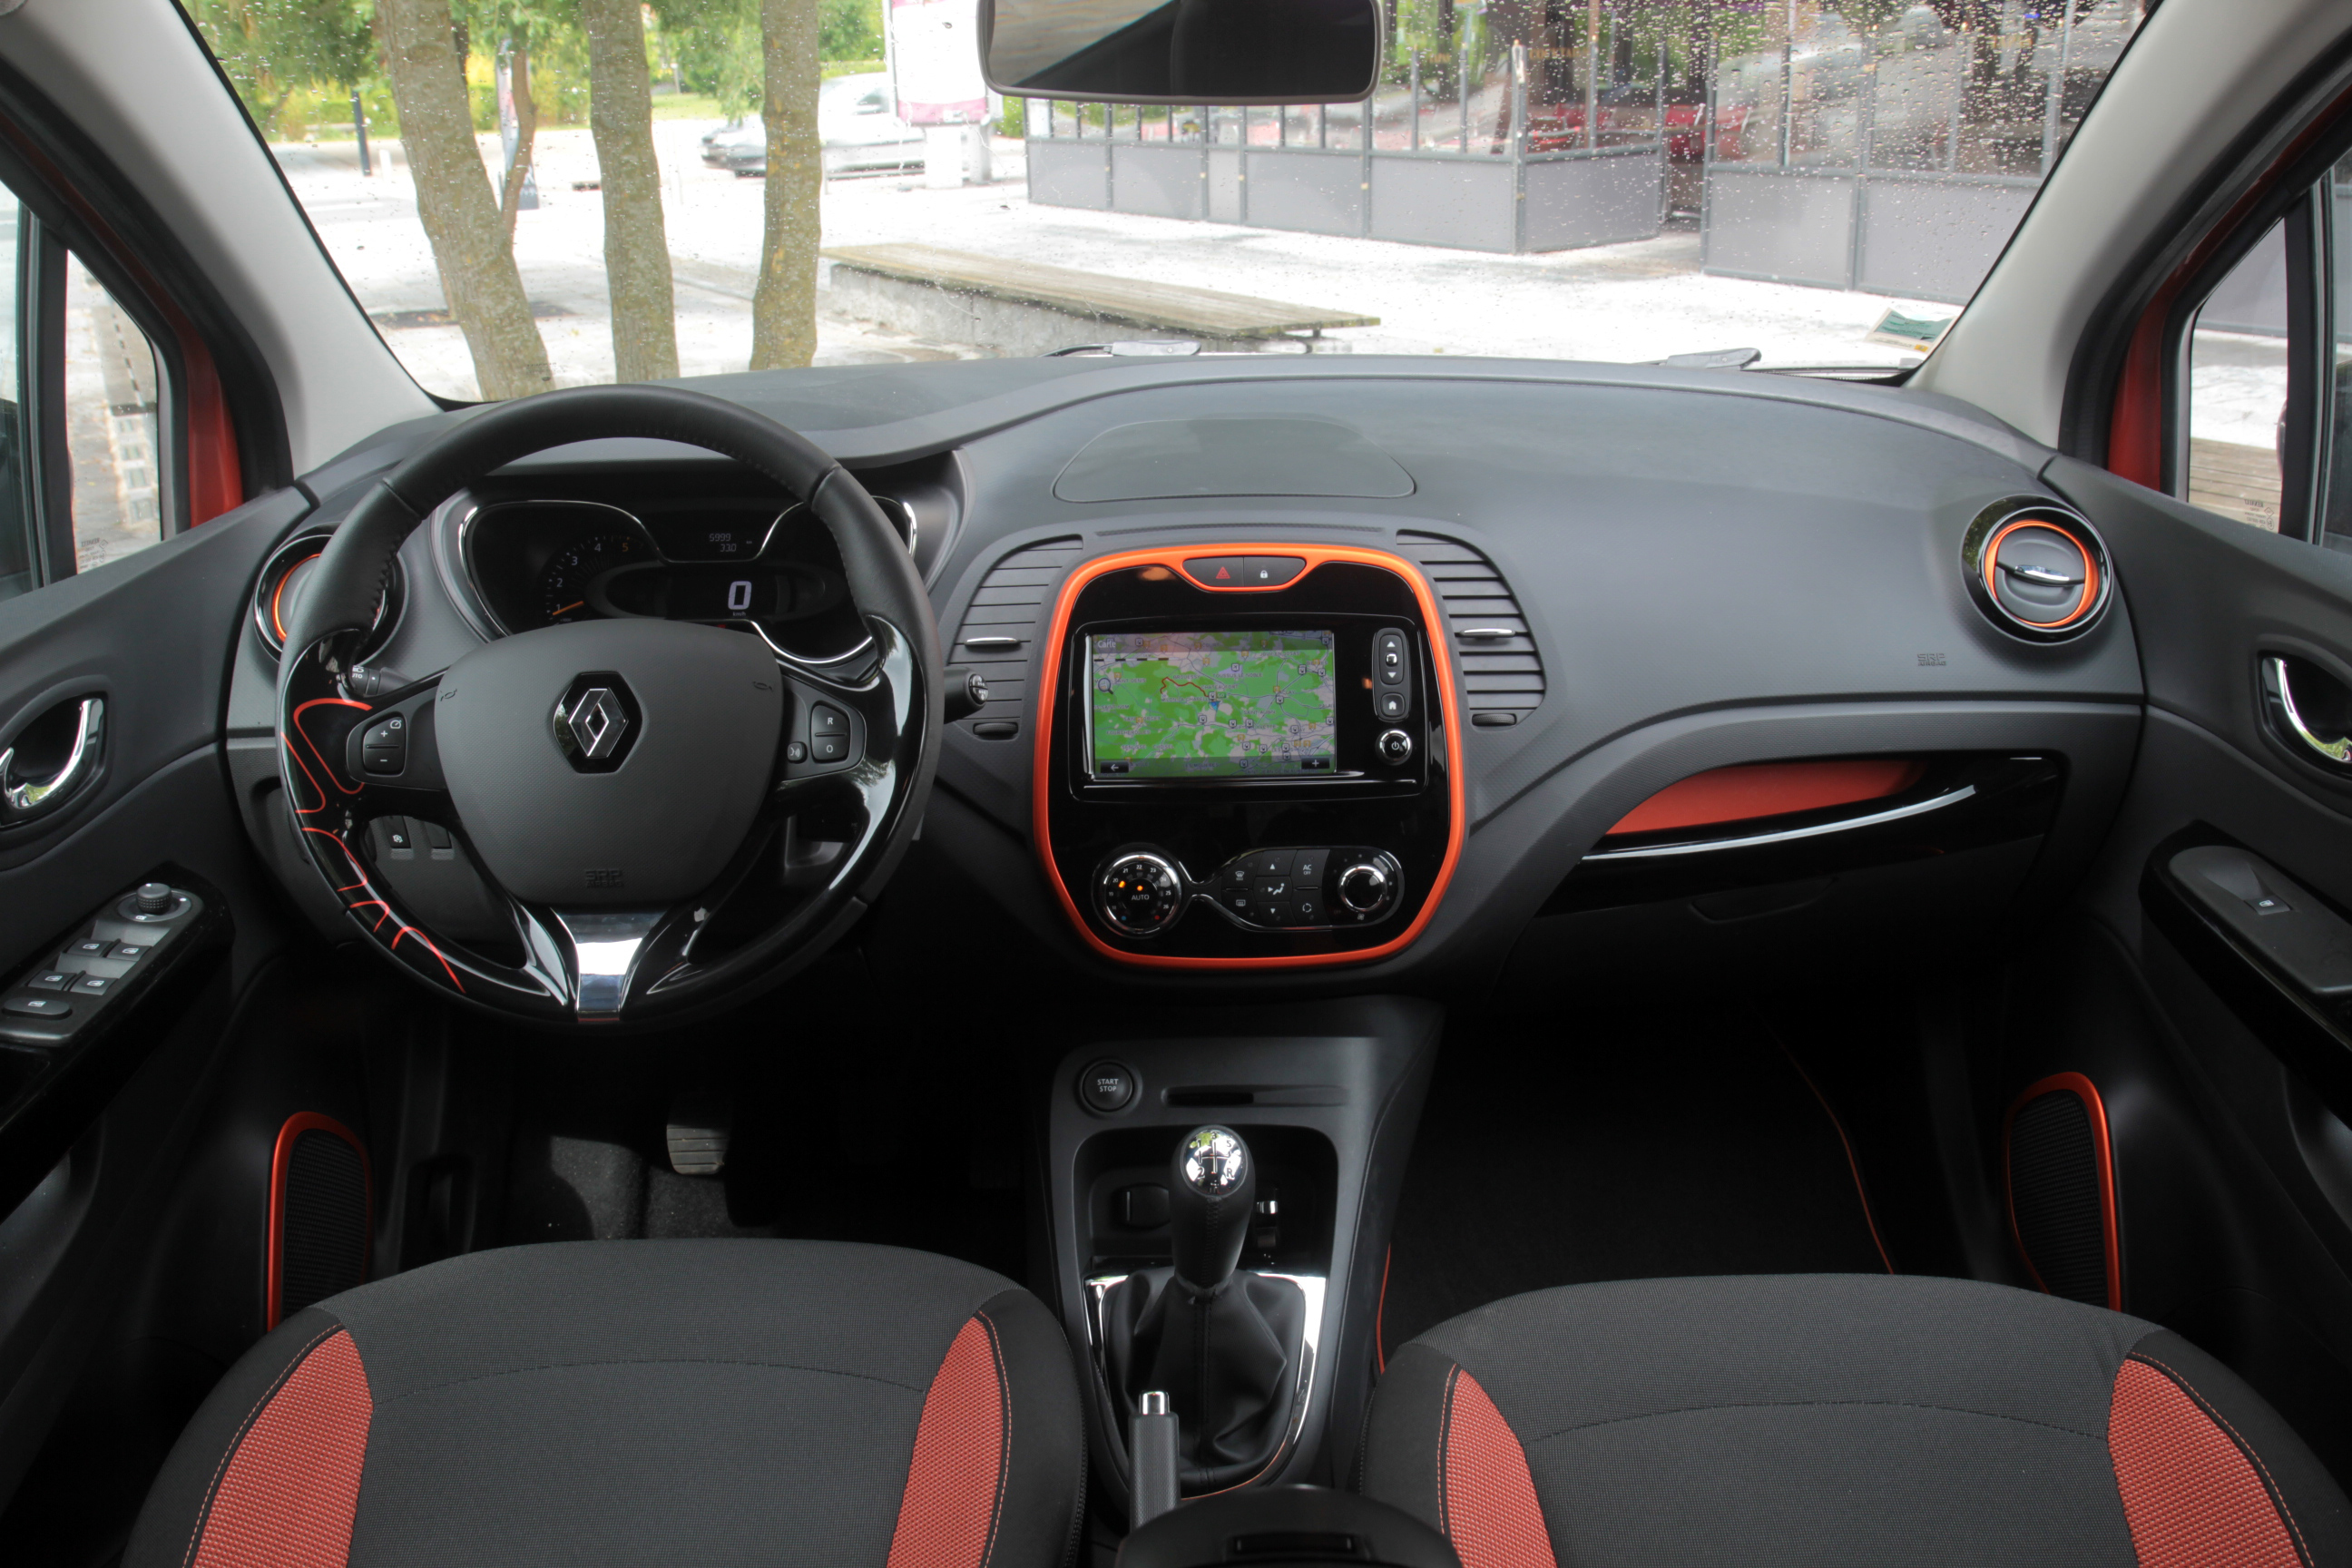 comparatif vid o renault captur vs peugeot 2008 coup. Black Bedroom Furniture Sets. Home Design Ideas